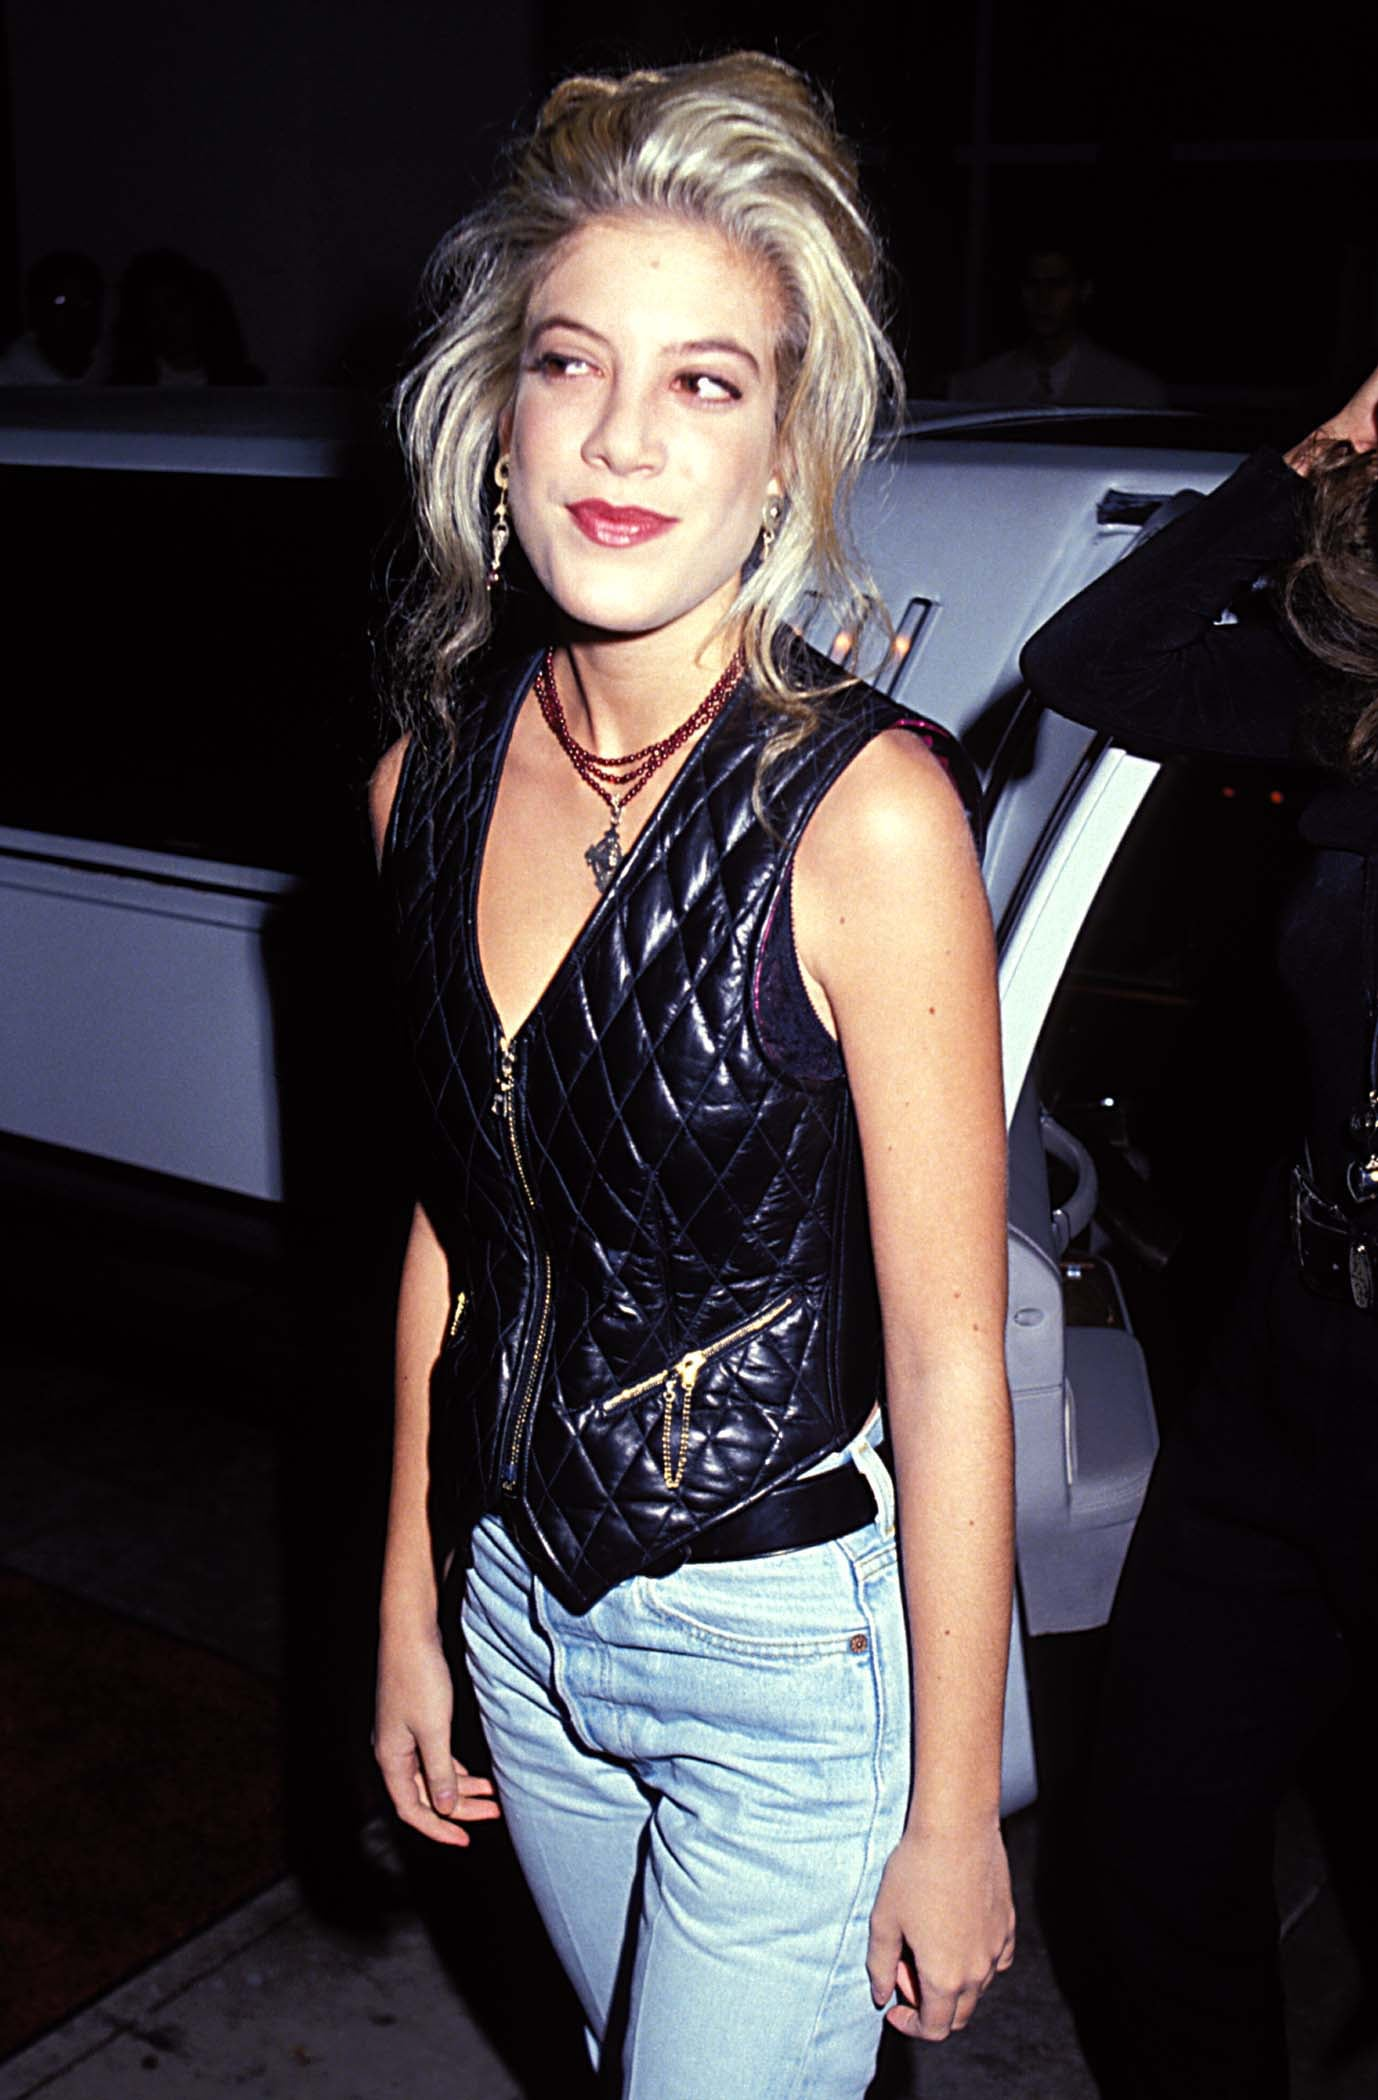 1991: She Played Donna Martin on 90210